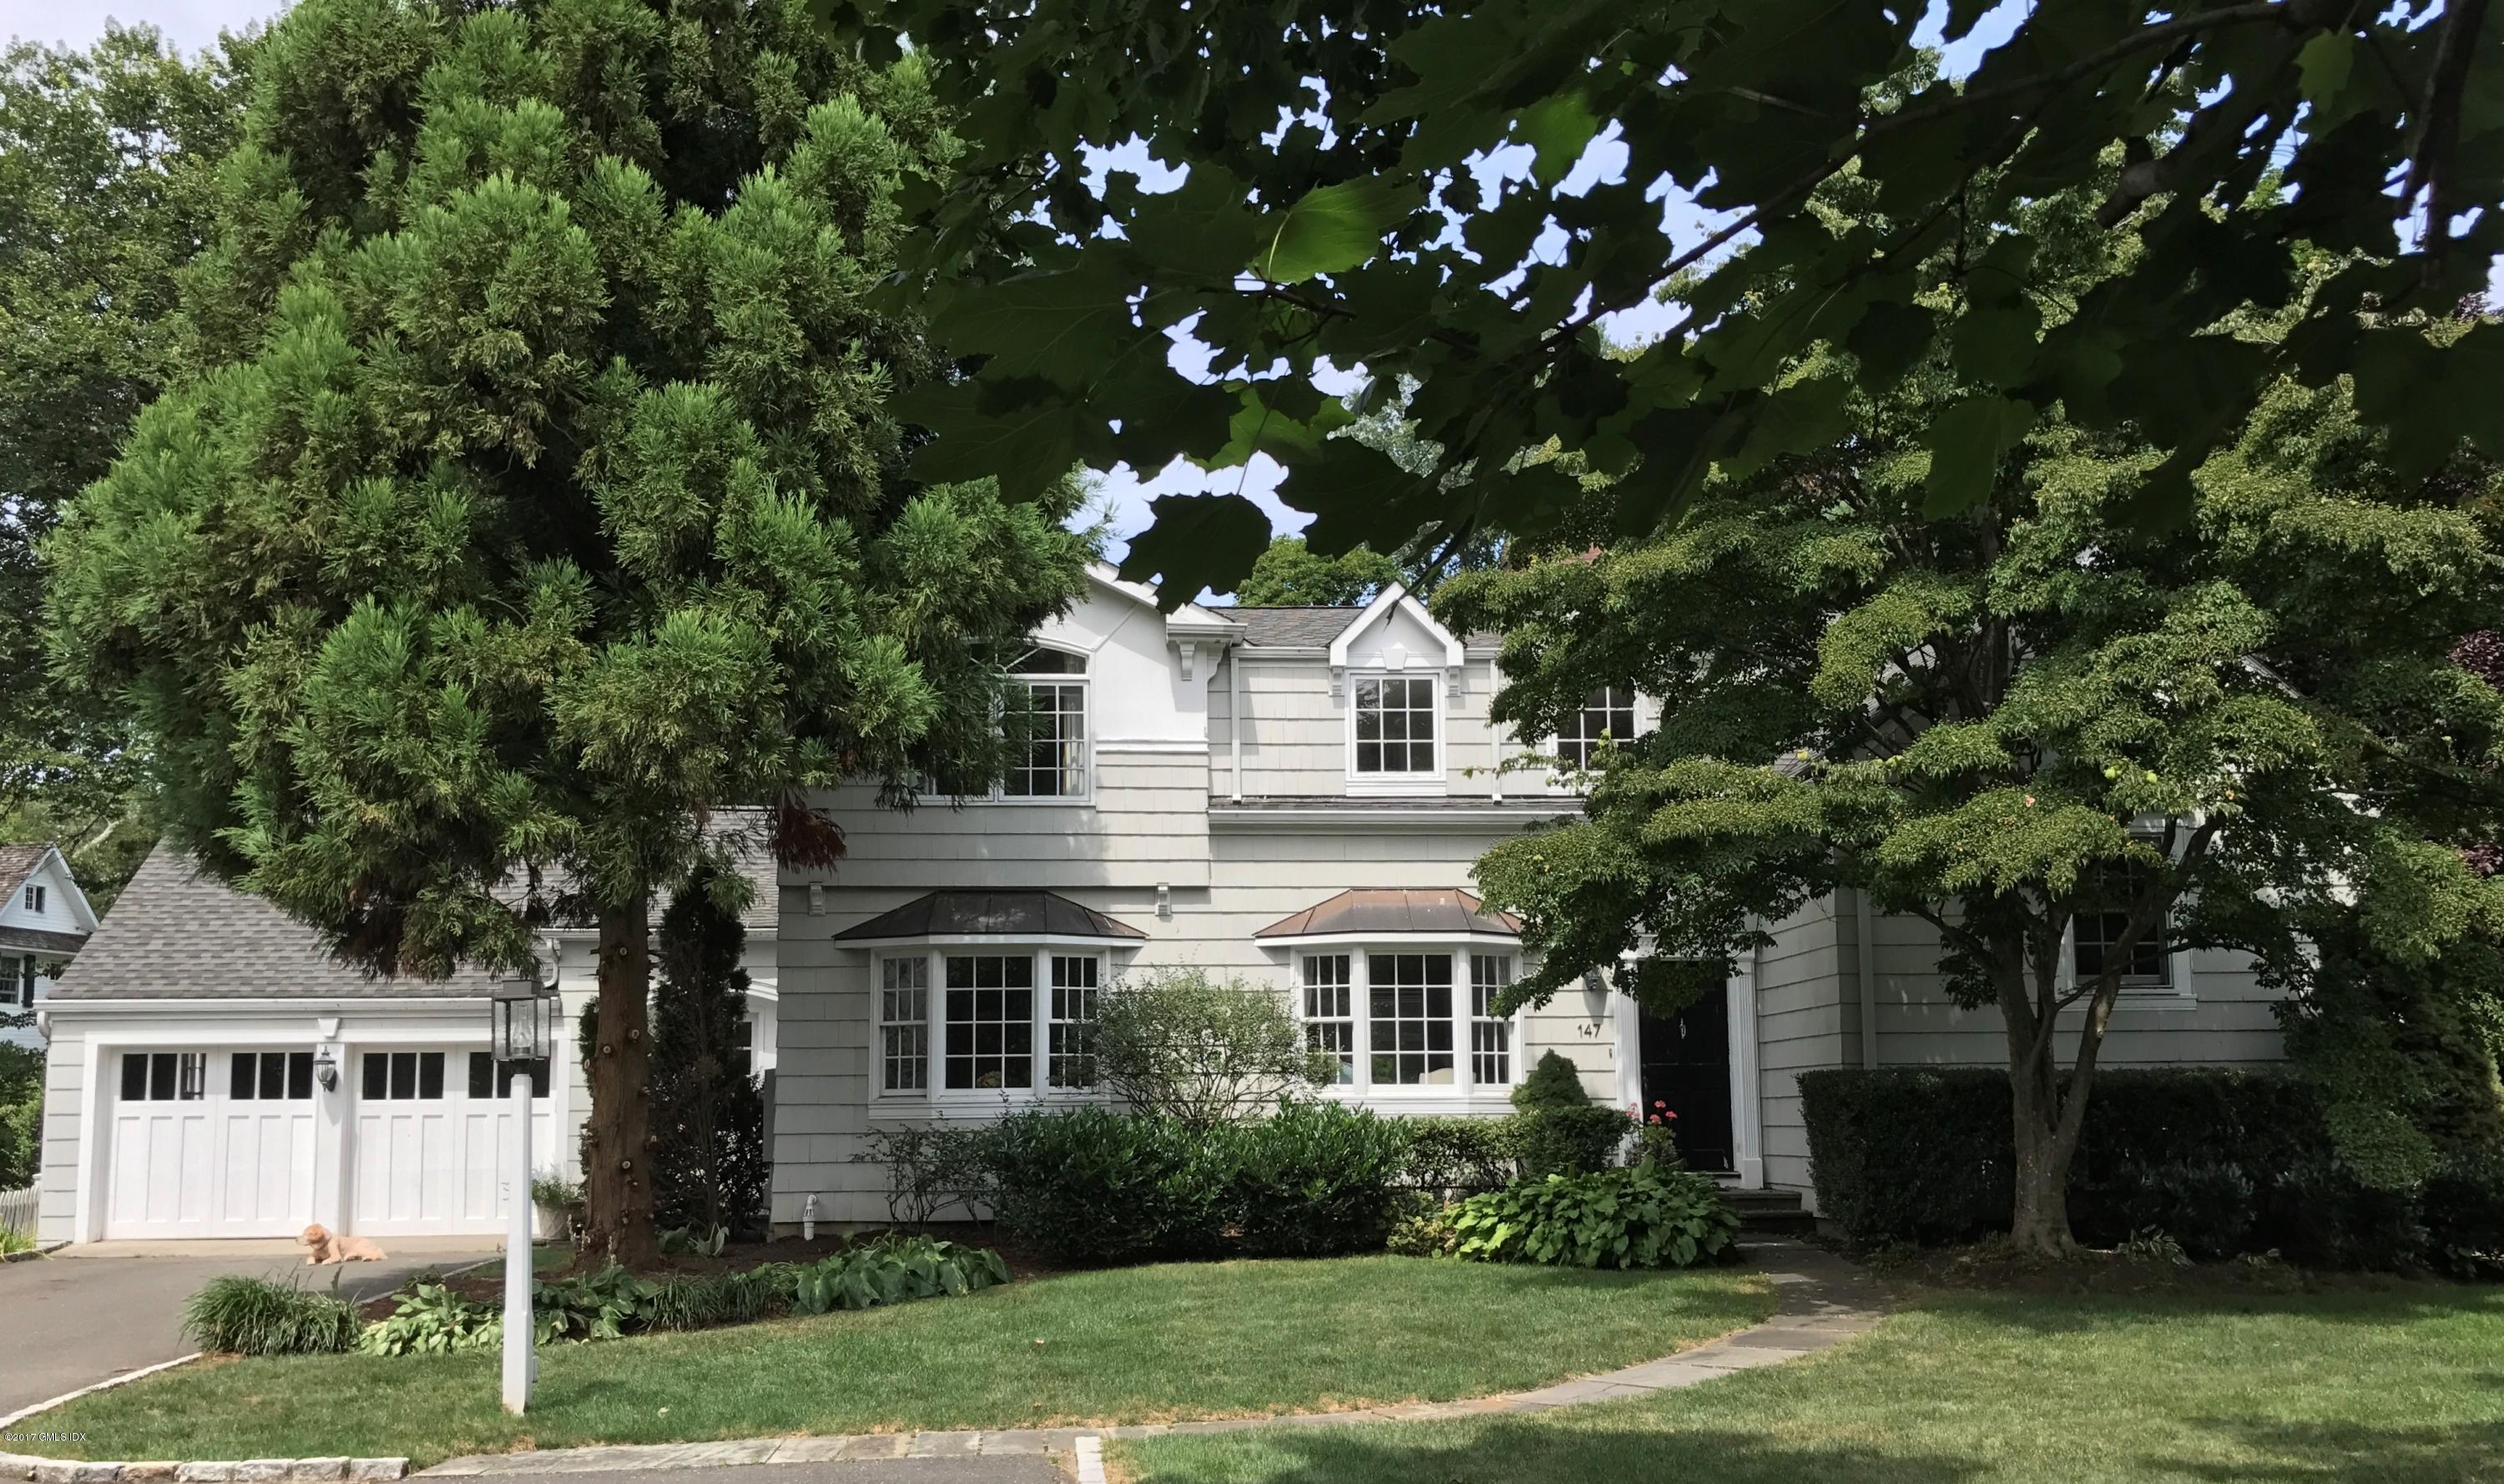 147 Shore Road,Old Greenwich,Connecticut 06870,4 Bedrooms Bedrooms,3 BathroomsBathrooms,Single family,Shore,105107